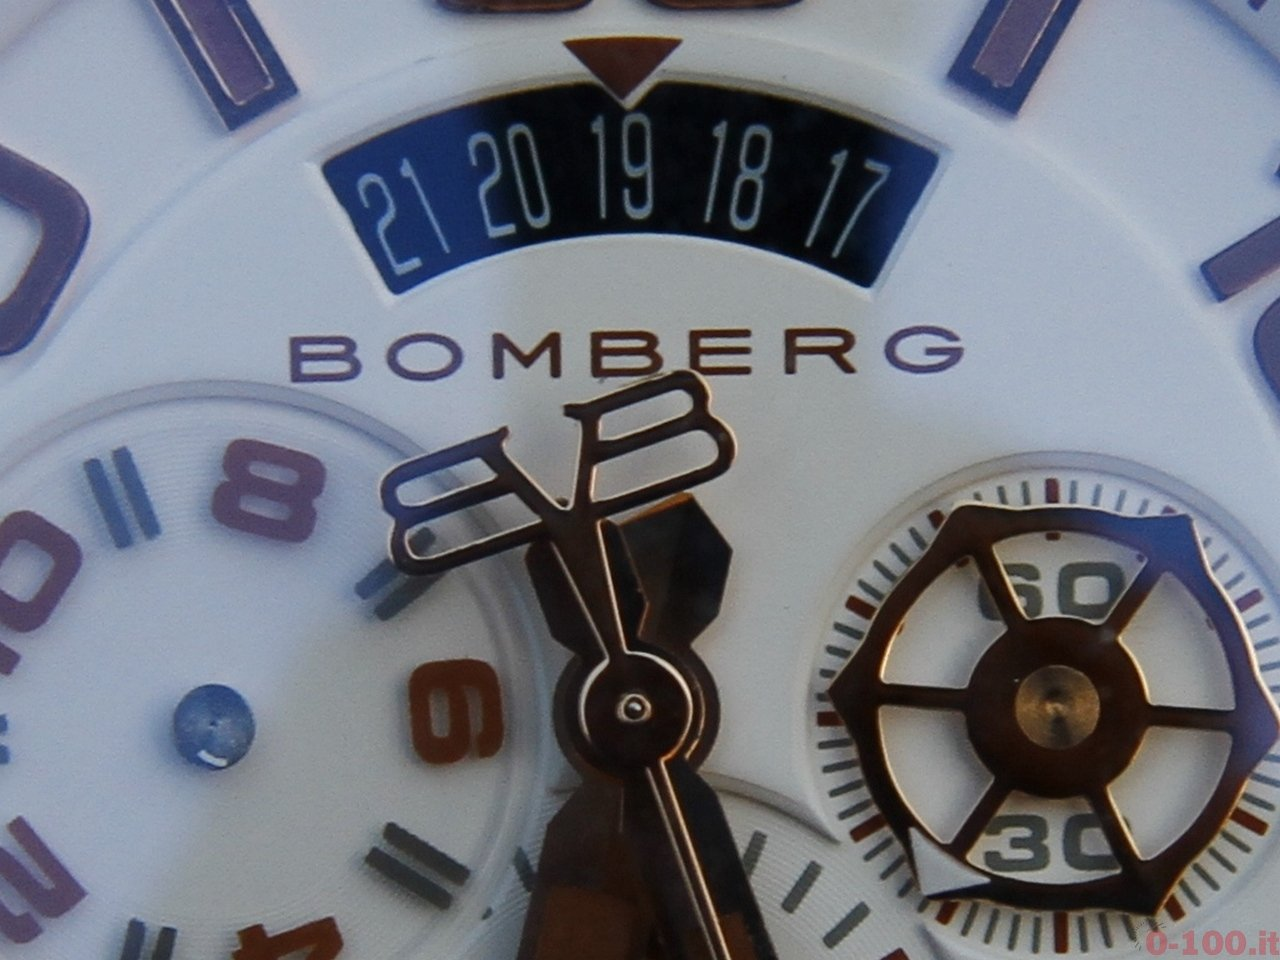 baselworld-2015-bomberg-bolt-68-chrono-neon-white-0-100_12